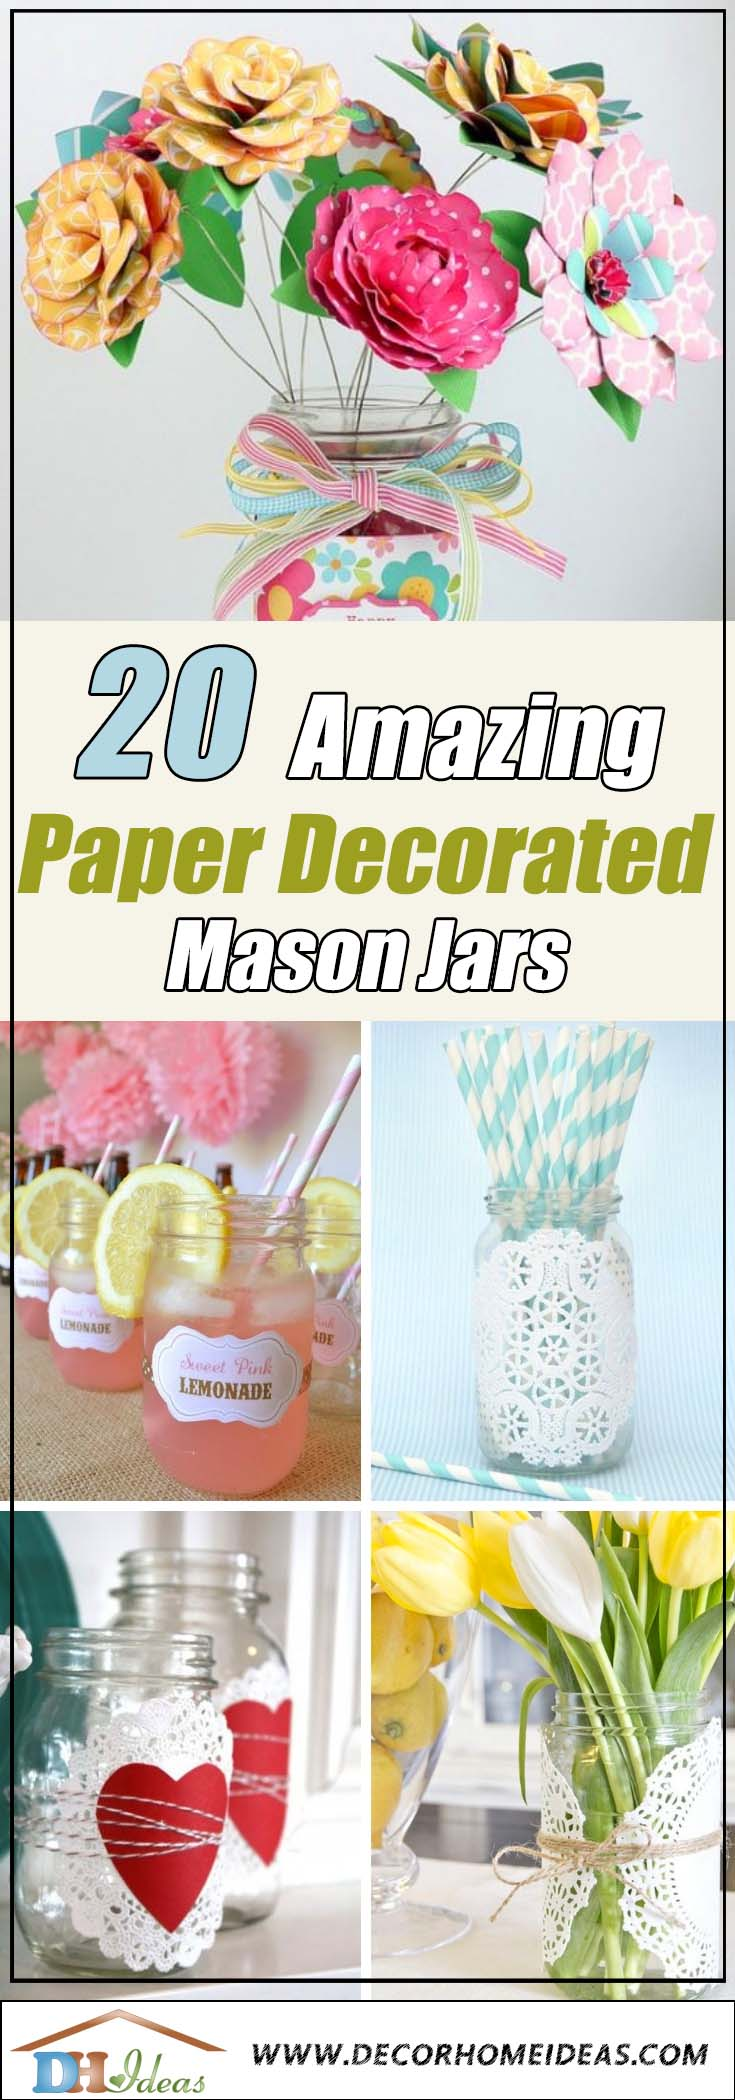 20 Amazing Paper Decorated Mason Jars for a Cozy Home | DIY paper-decorated jars for stunning home decoration #jars #recycledjars #decoratingideas #homedecor #decorating #diy #home #paperdecor #decorhomeideas